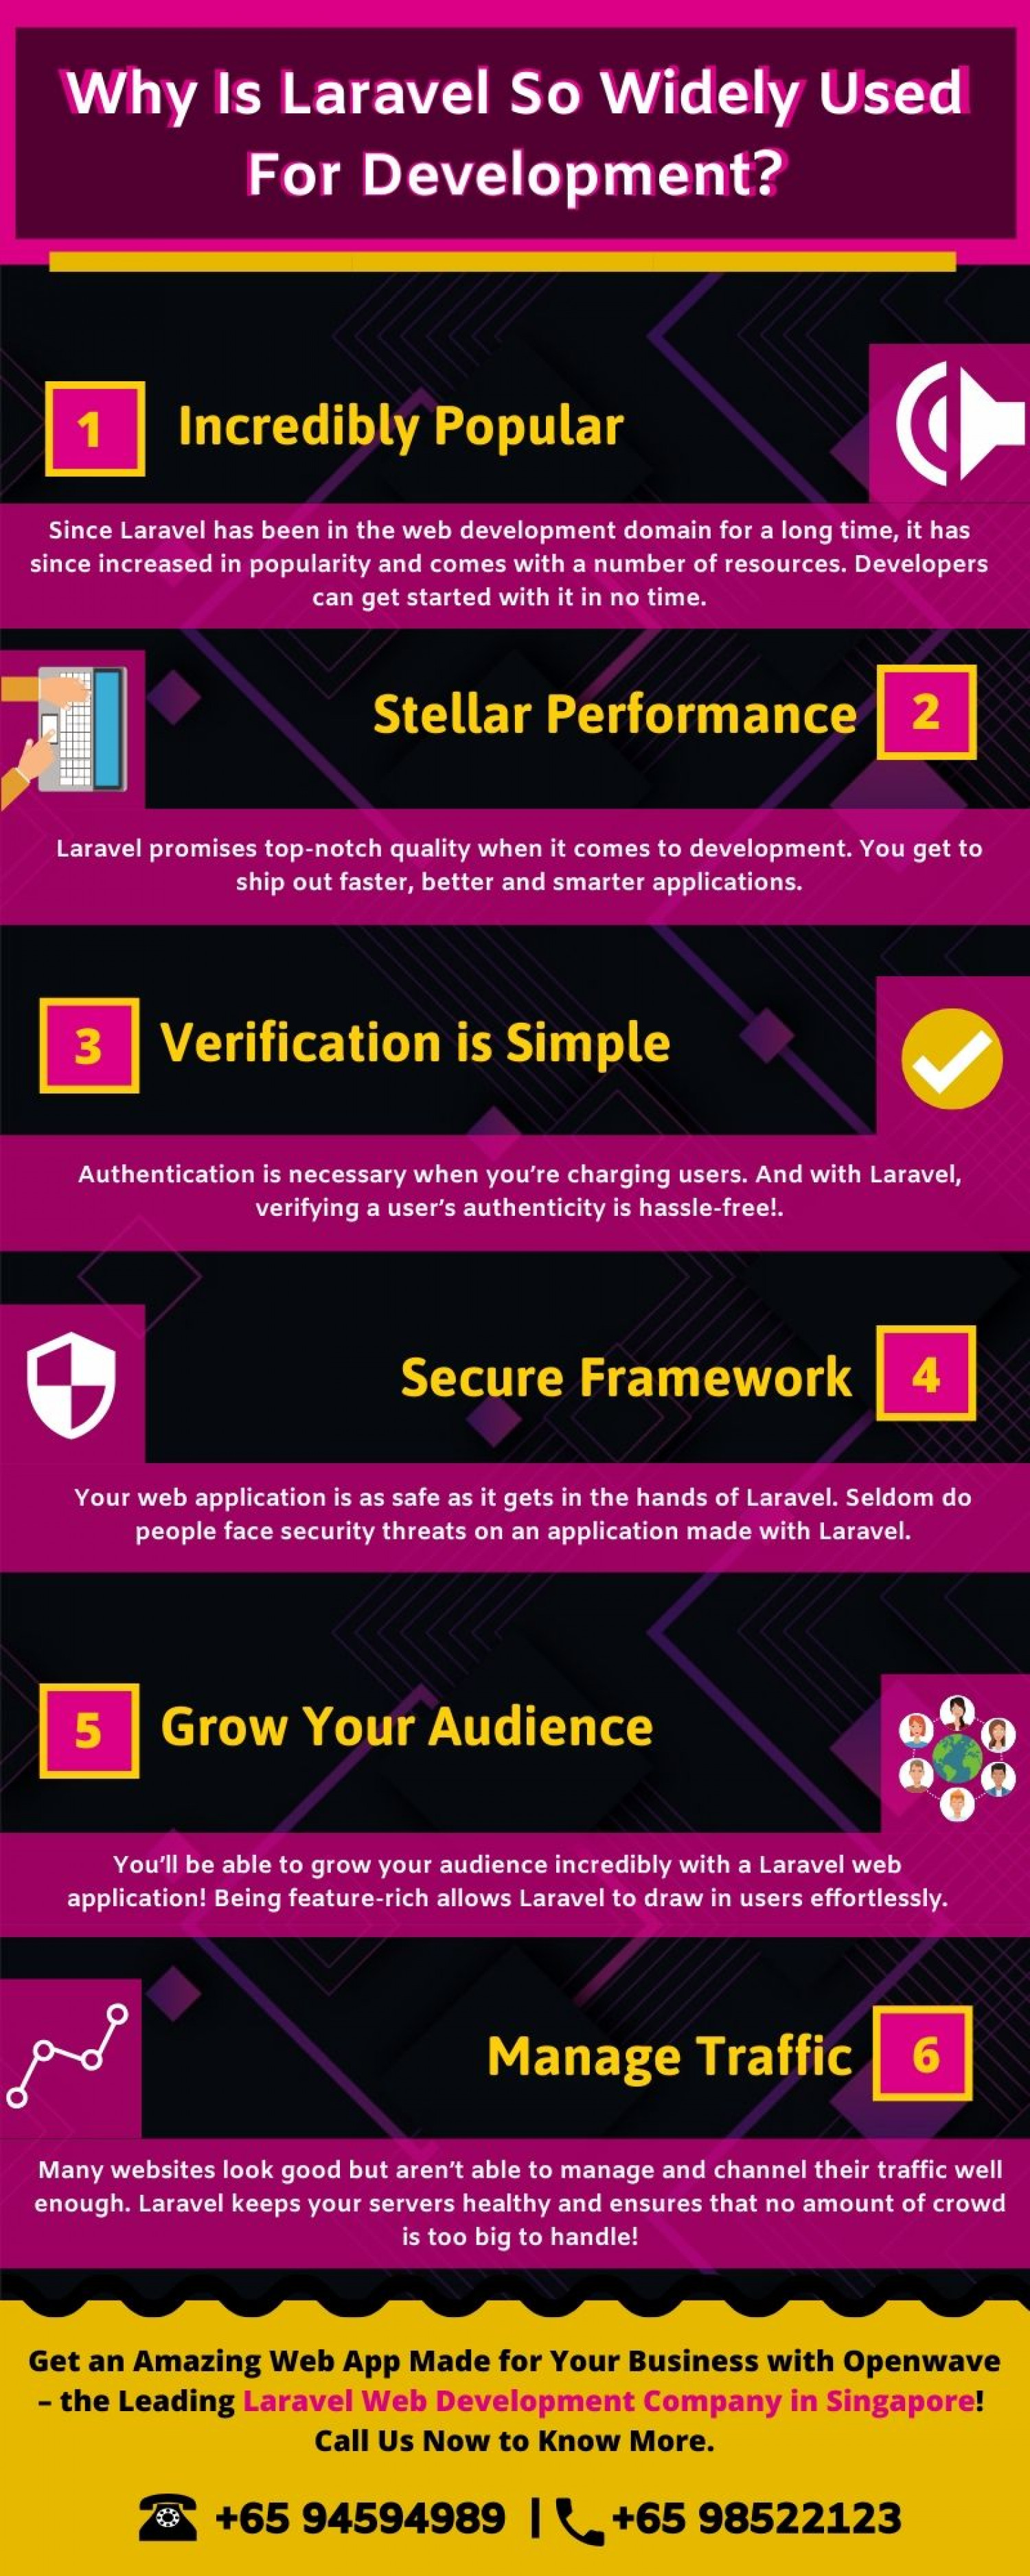 Why Is Laravel So Widely Used For Development? Infographic